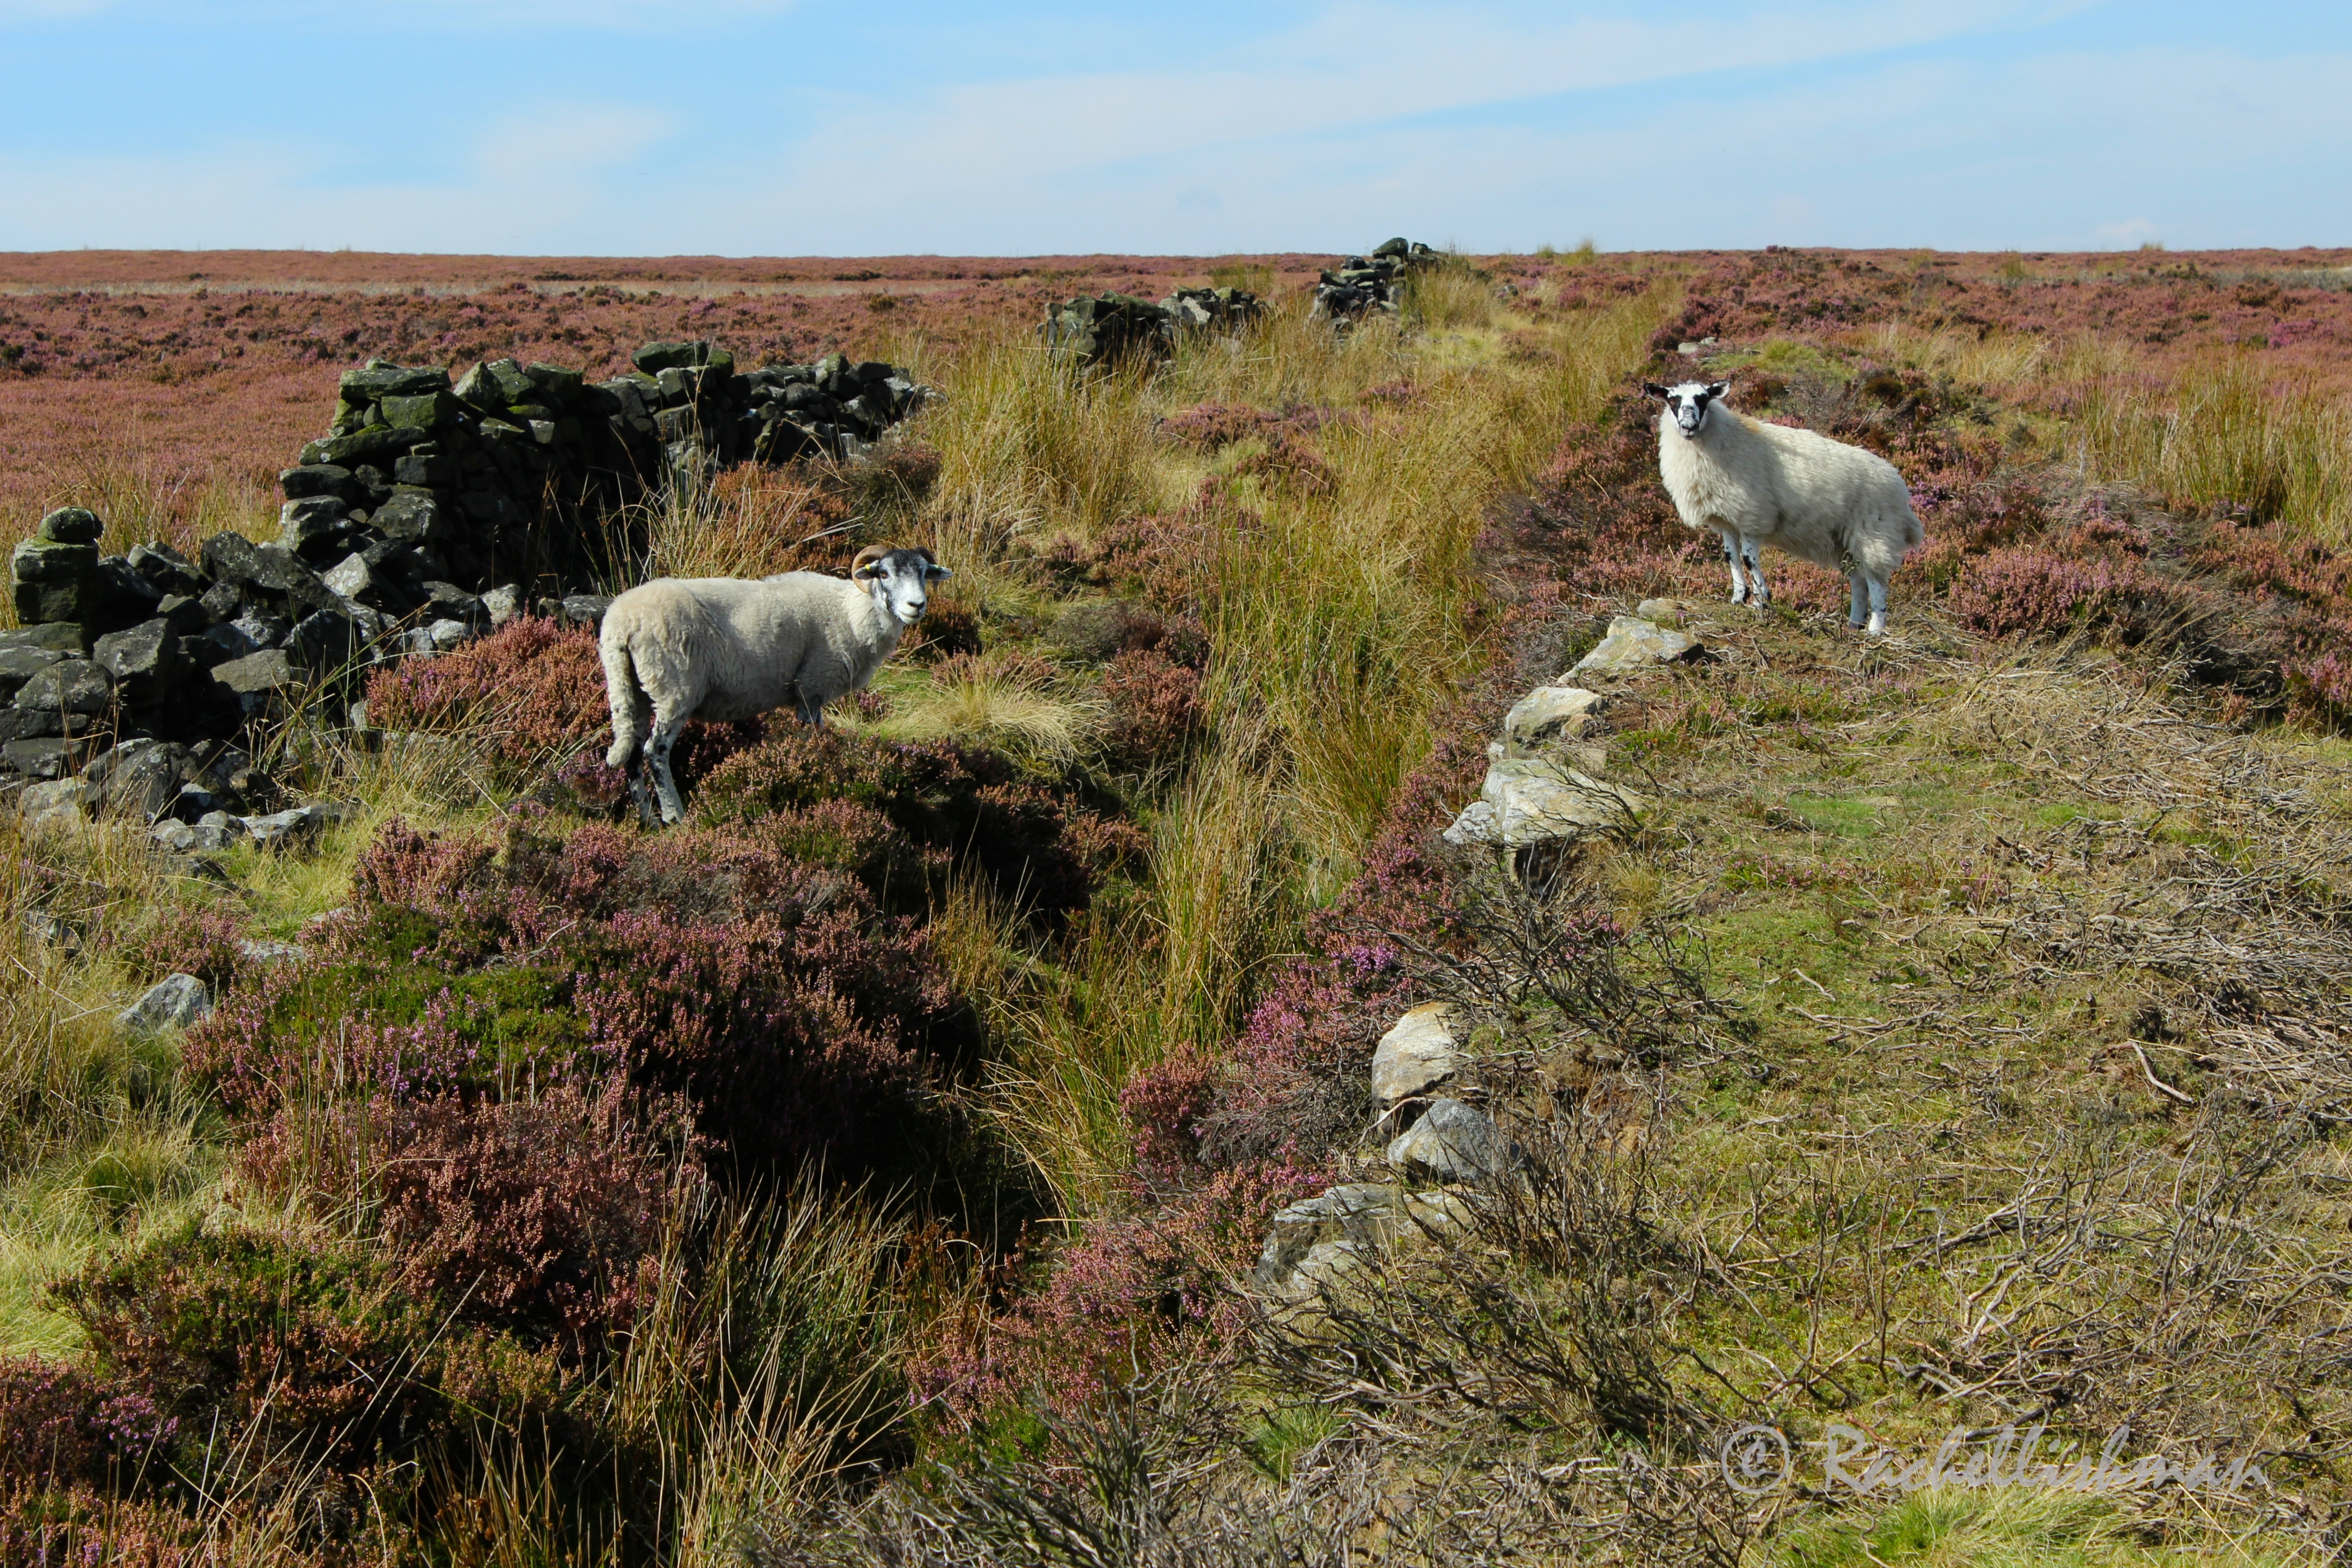 Birdlife and (many!) sheep kept us company on our walk across heather clad plains